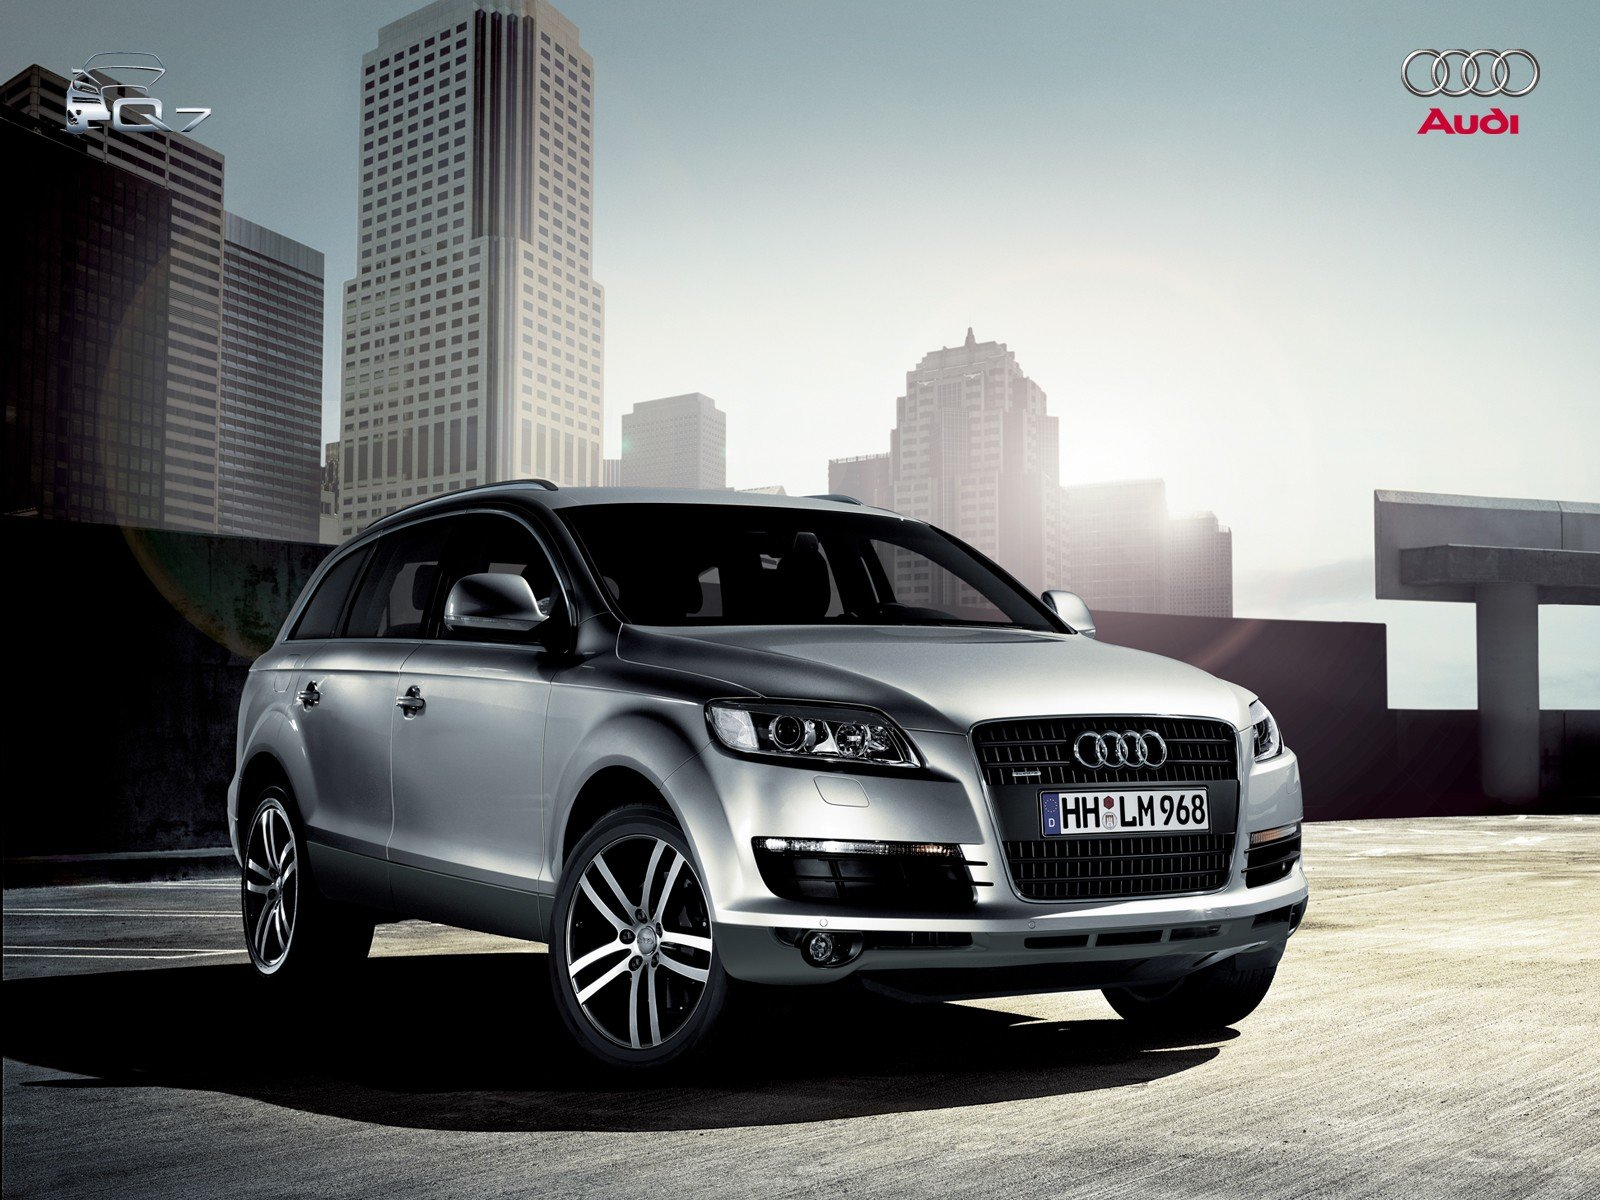 Latest Hd Audi Car Wallpapers Nice Wallpapers Free Download